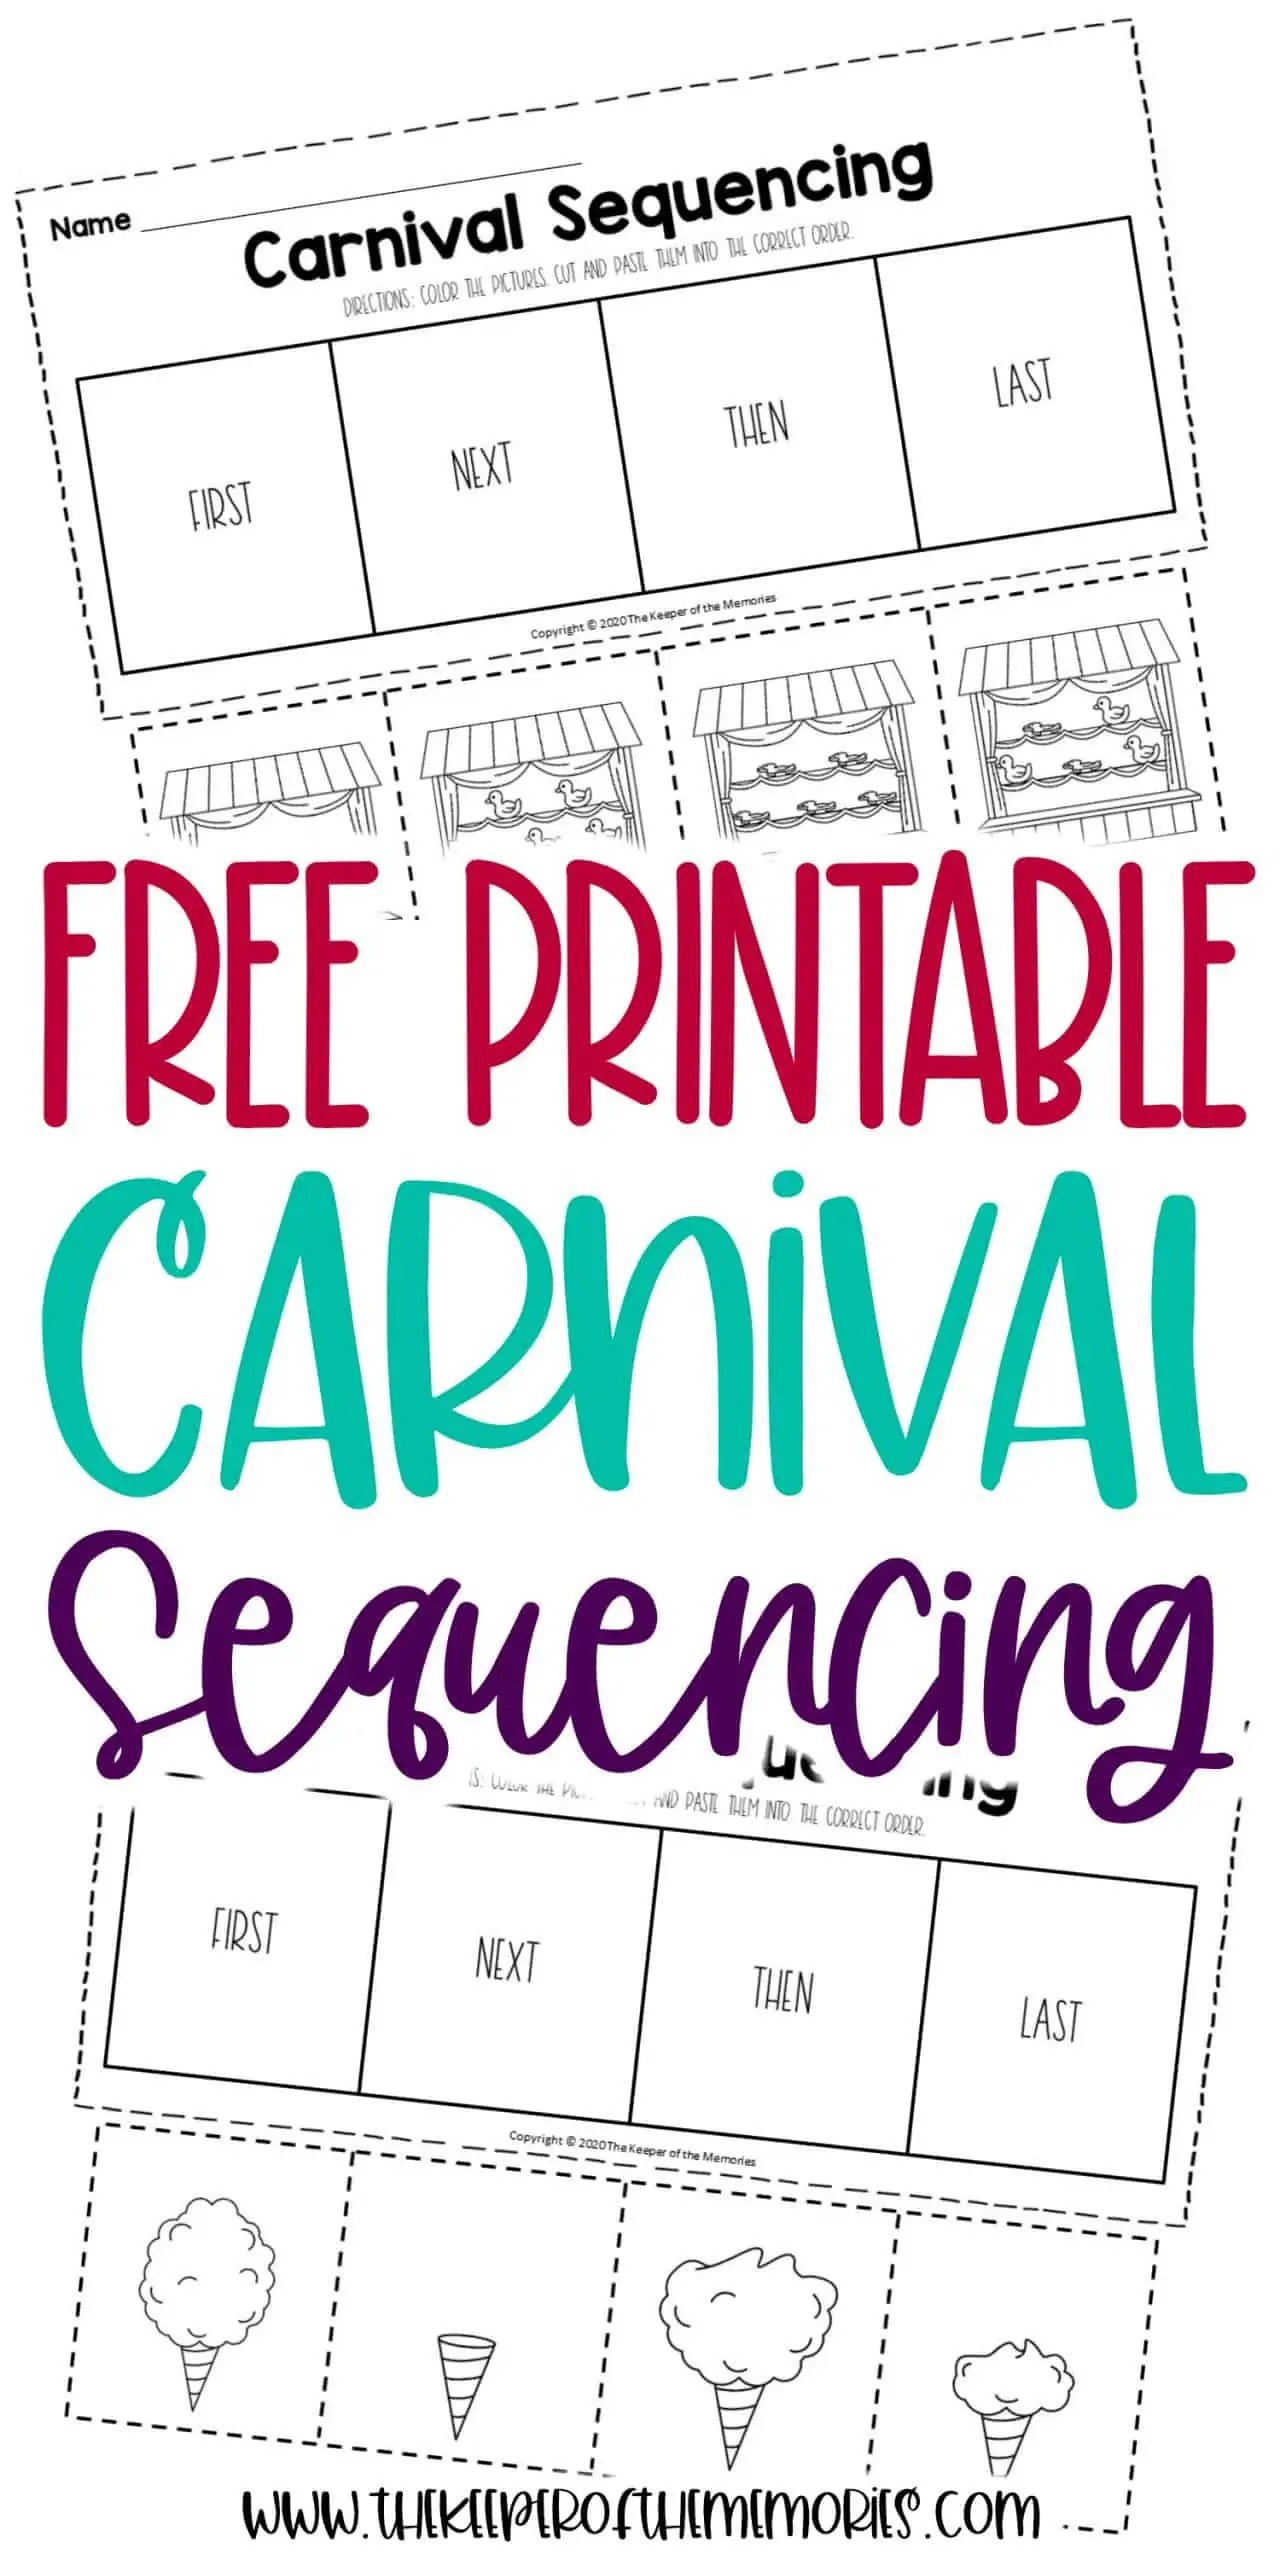 Free Printable Carnival Sequencing Worksheets